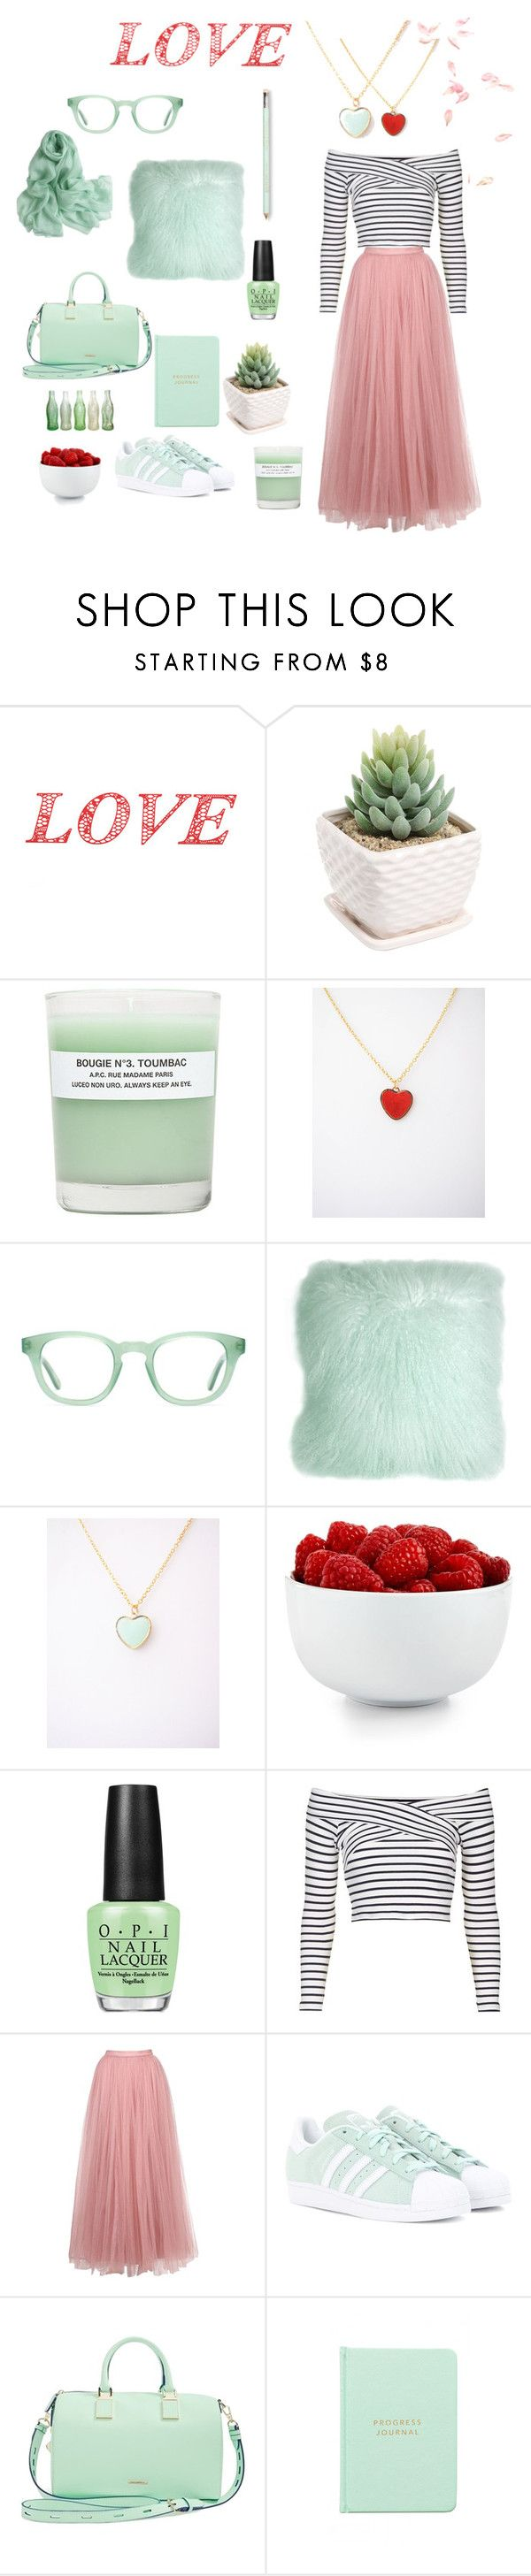 """""""Pastel love"""" by nuann ❤ liked on Polyvore featuring WALL, A.P.C., Aframes, Pillow Decor, The Cellar, OPI, Topshop, Little Mistress, adidas Originals and Rebecca Minkoff"""